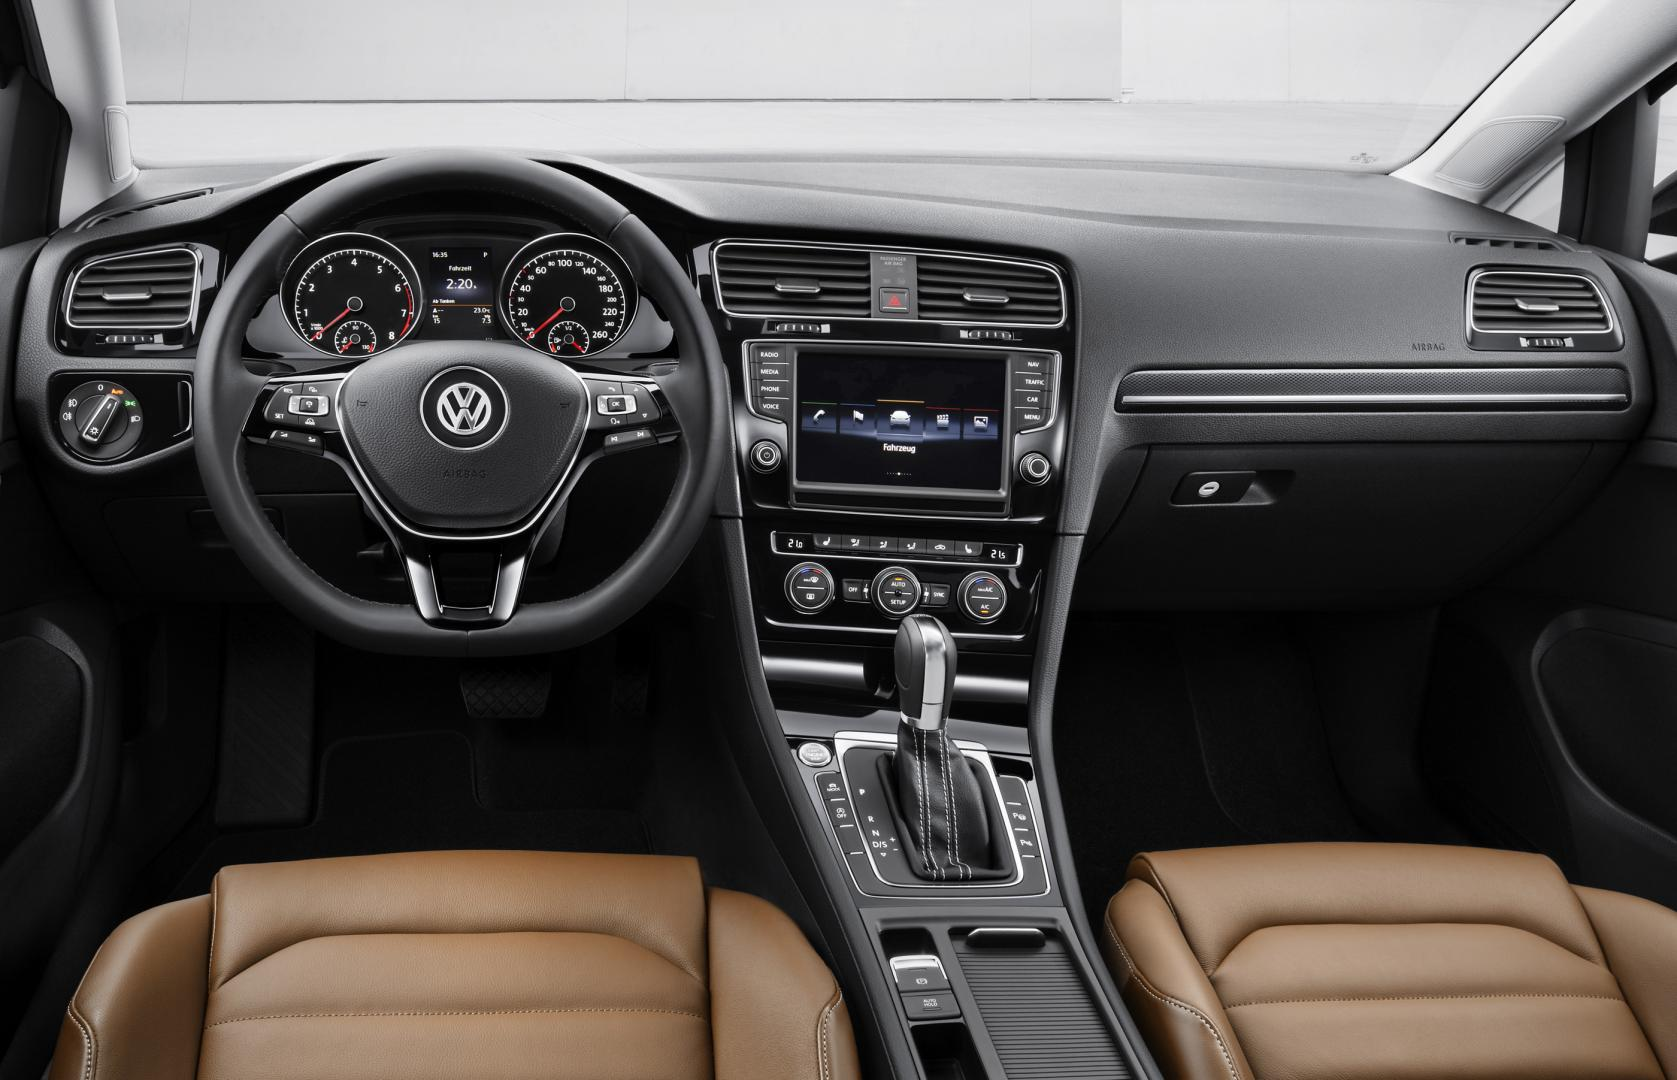 Volkswagen Golf 7 interieur